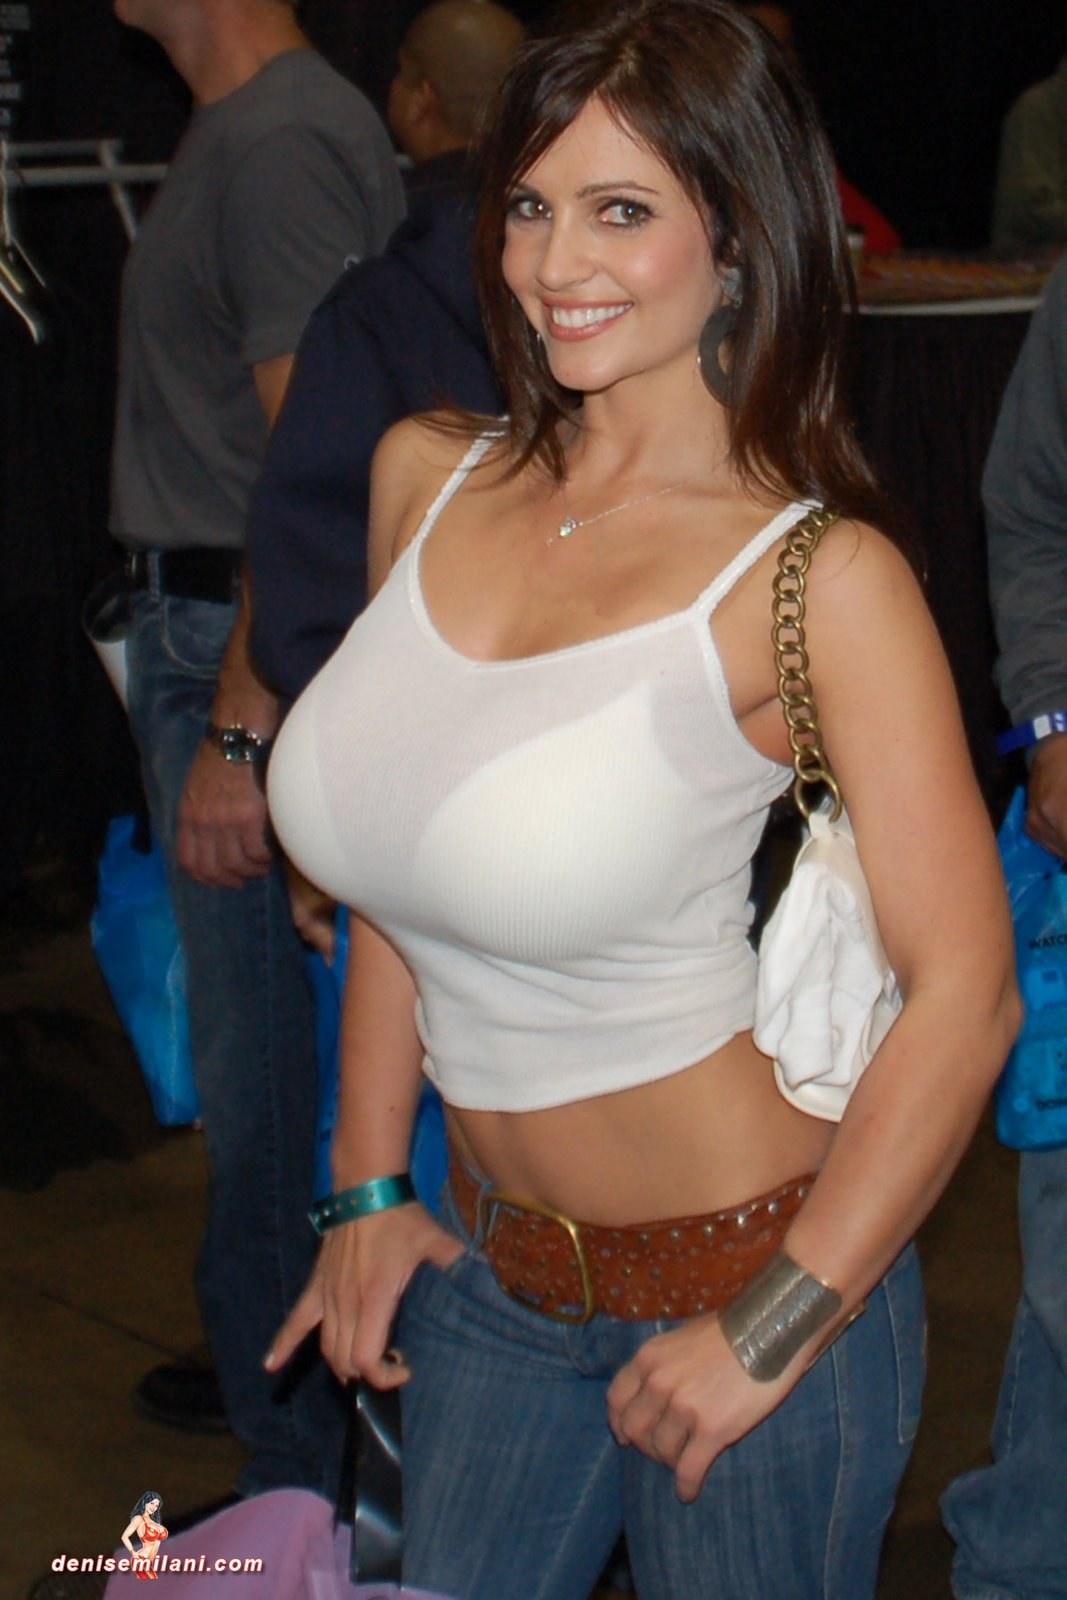 Adultcon 2012 http://www.topimages4u.com/2012/02/denis-milani-sexiest-boobs.html